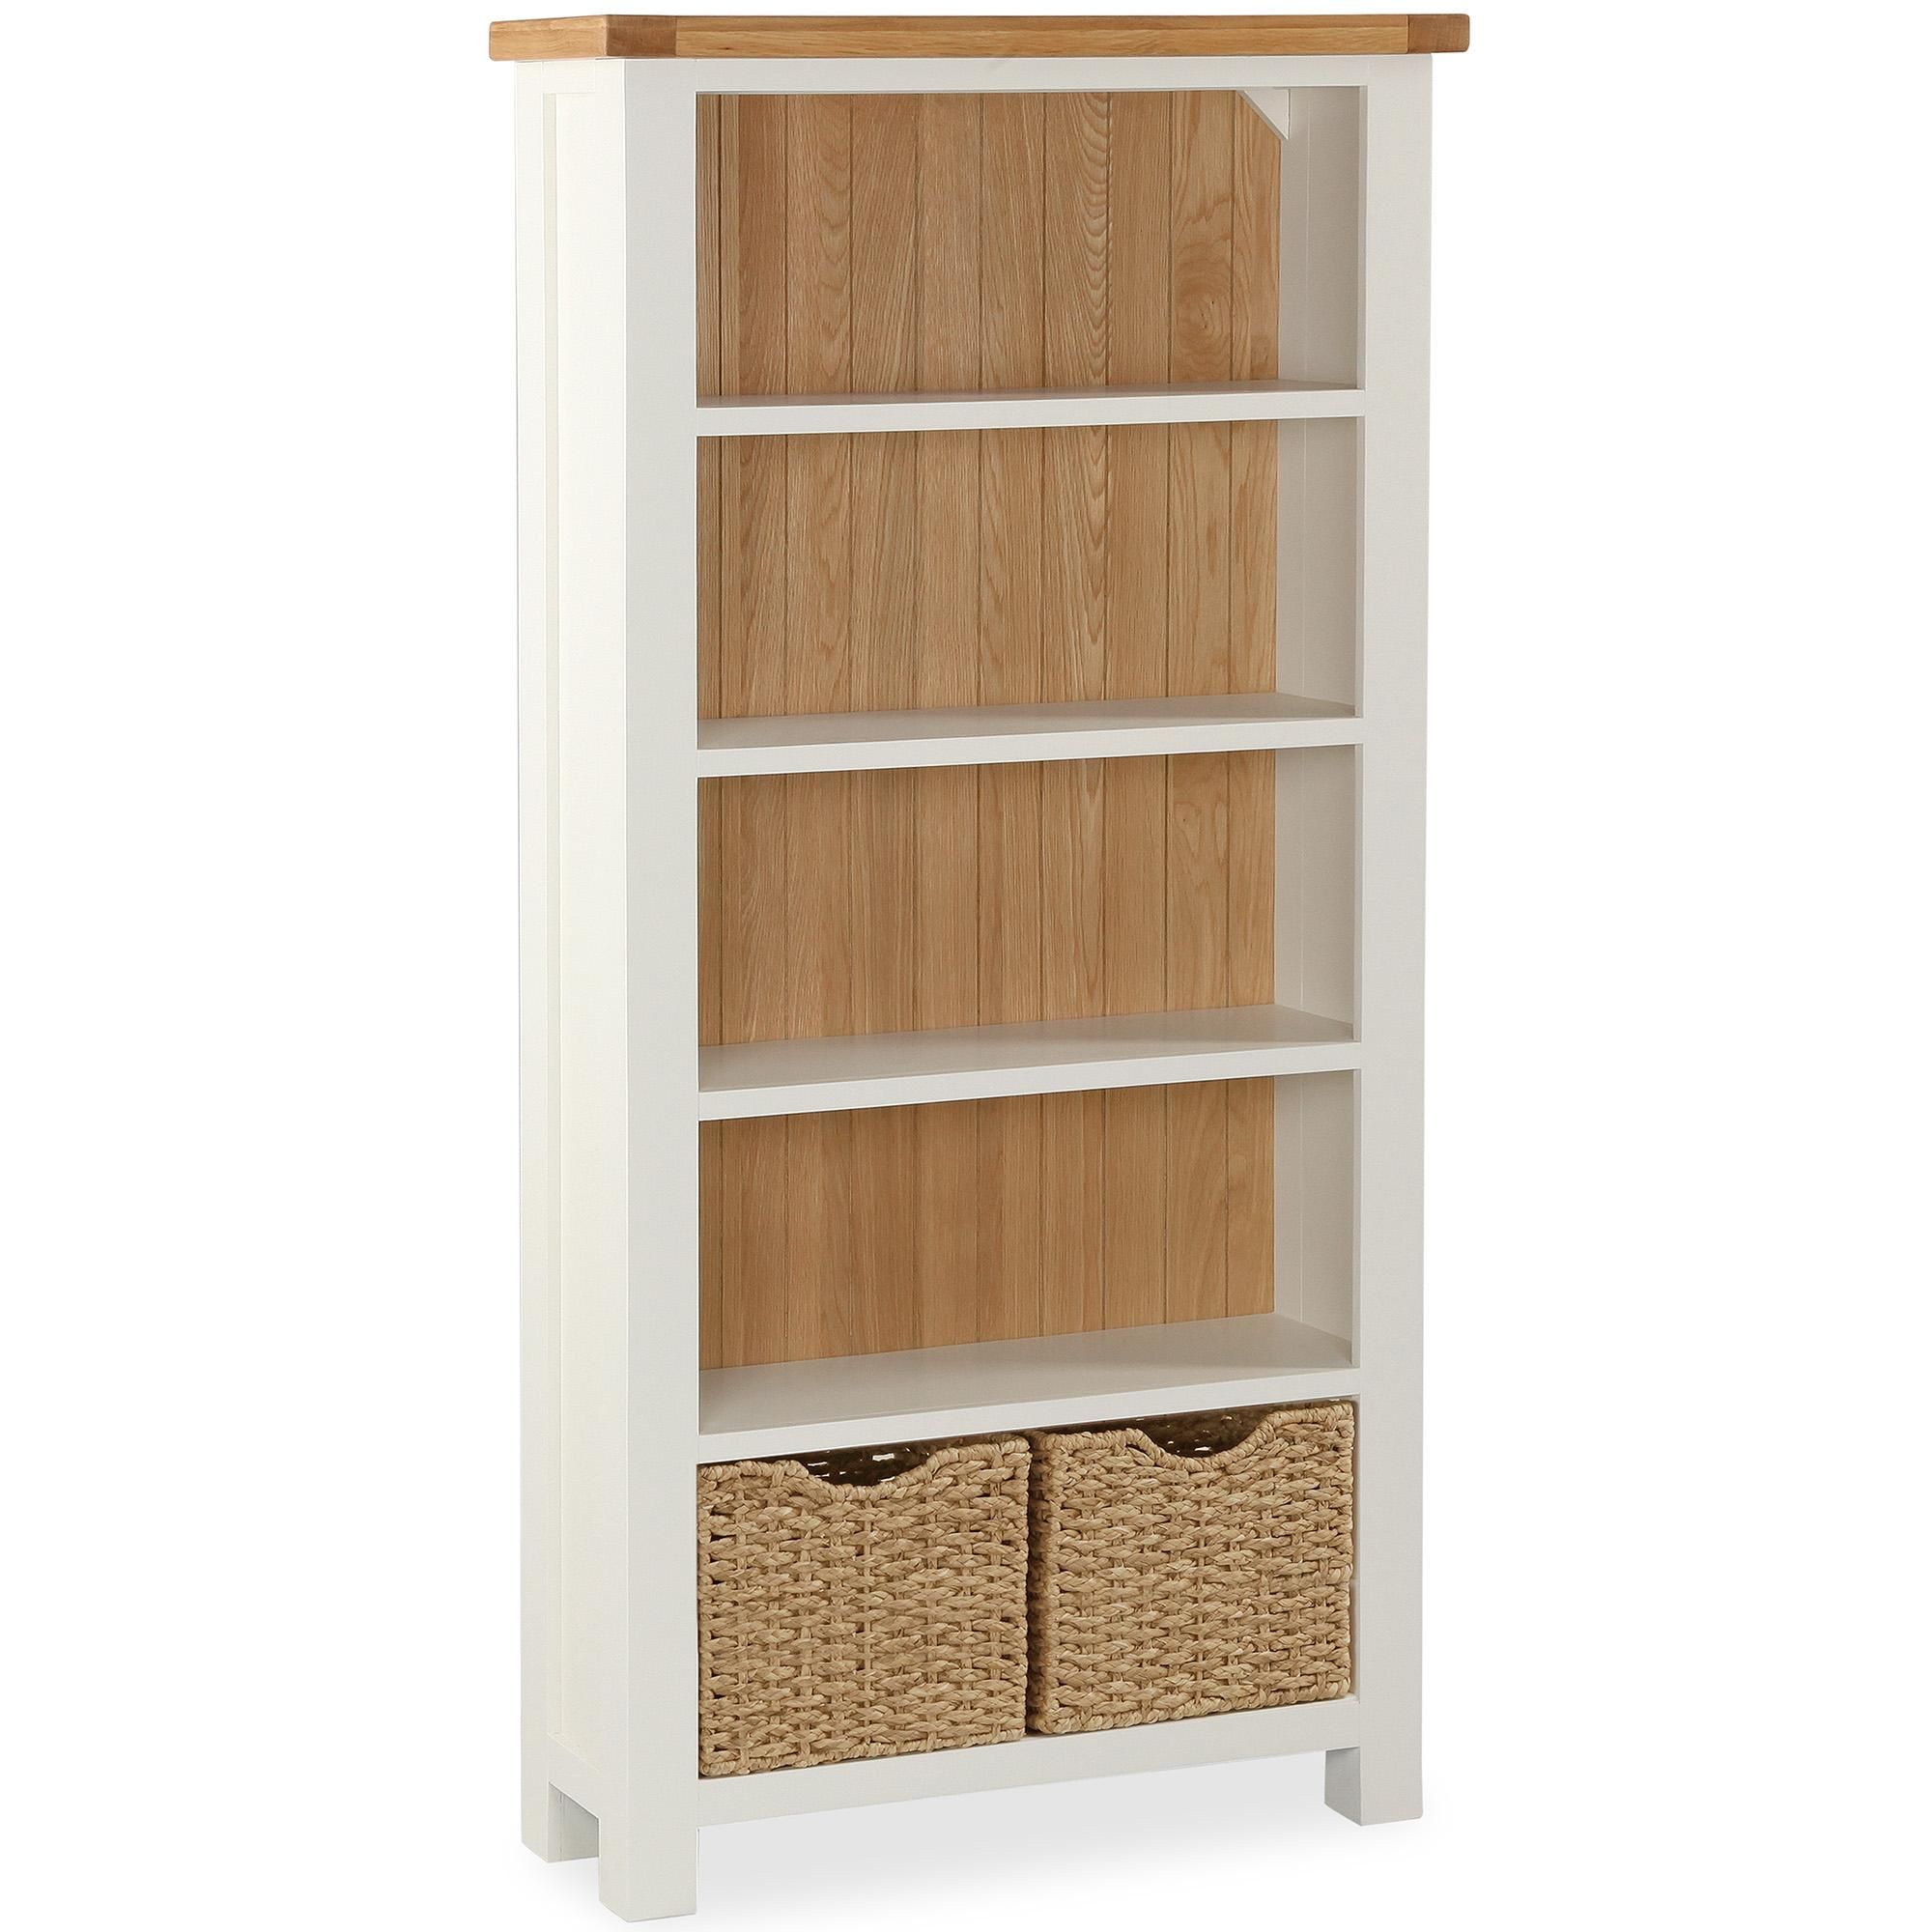 Dunelm Cream Wilby Large Bookcase Large Bookcase Cream Bedroom